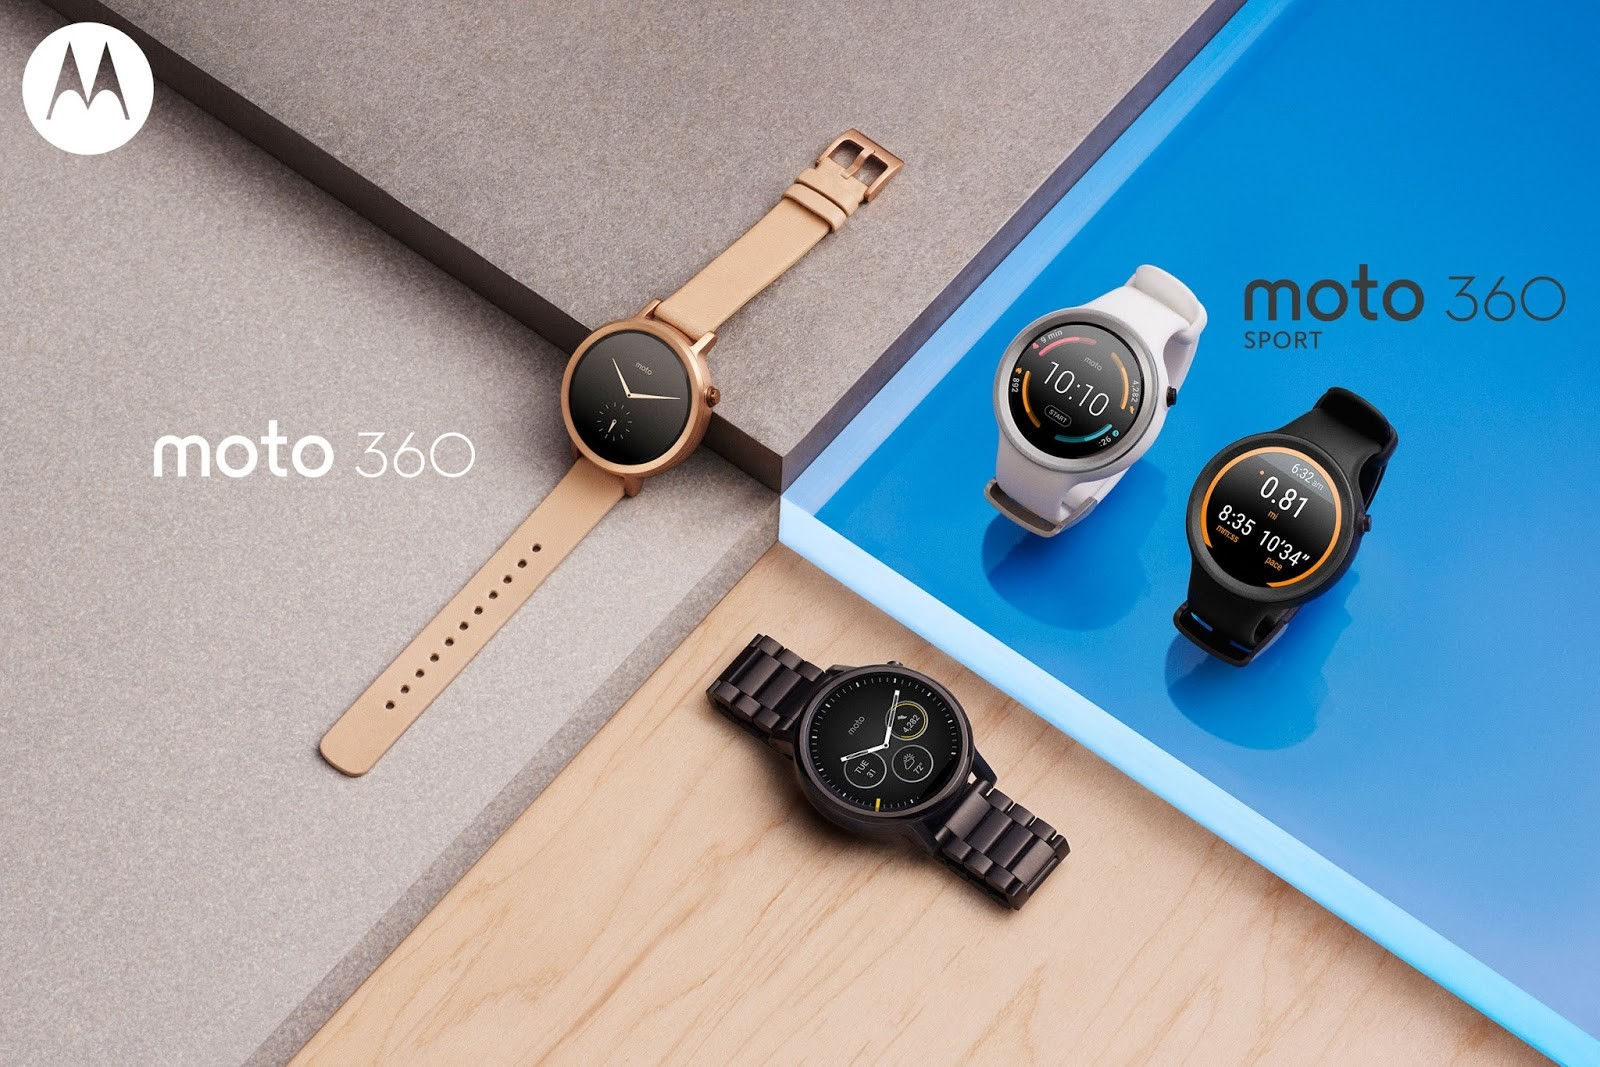 Photo of the 360 family: Motorola's smart watch has become much more diverse